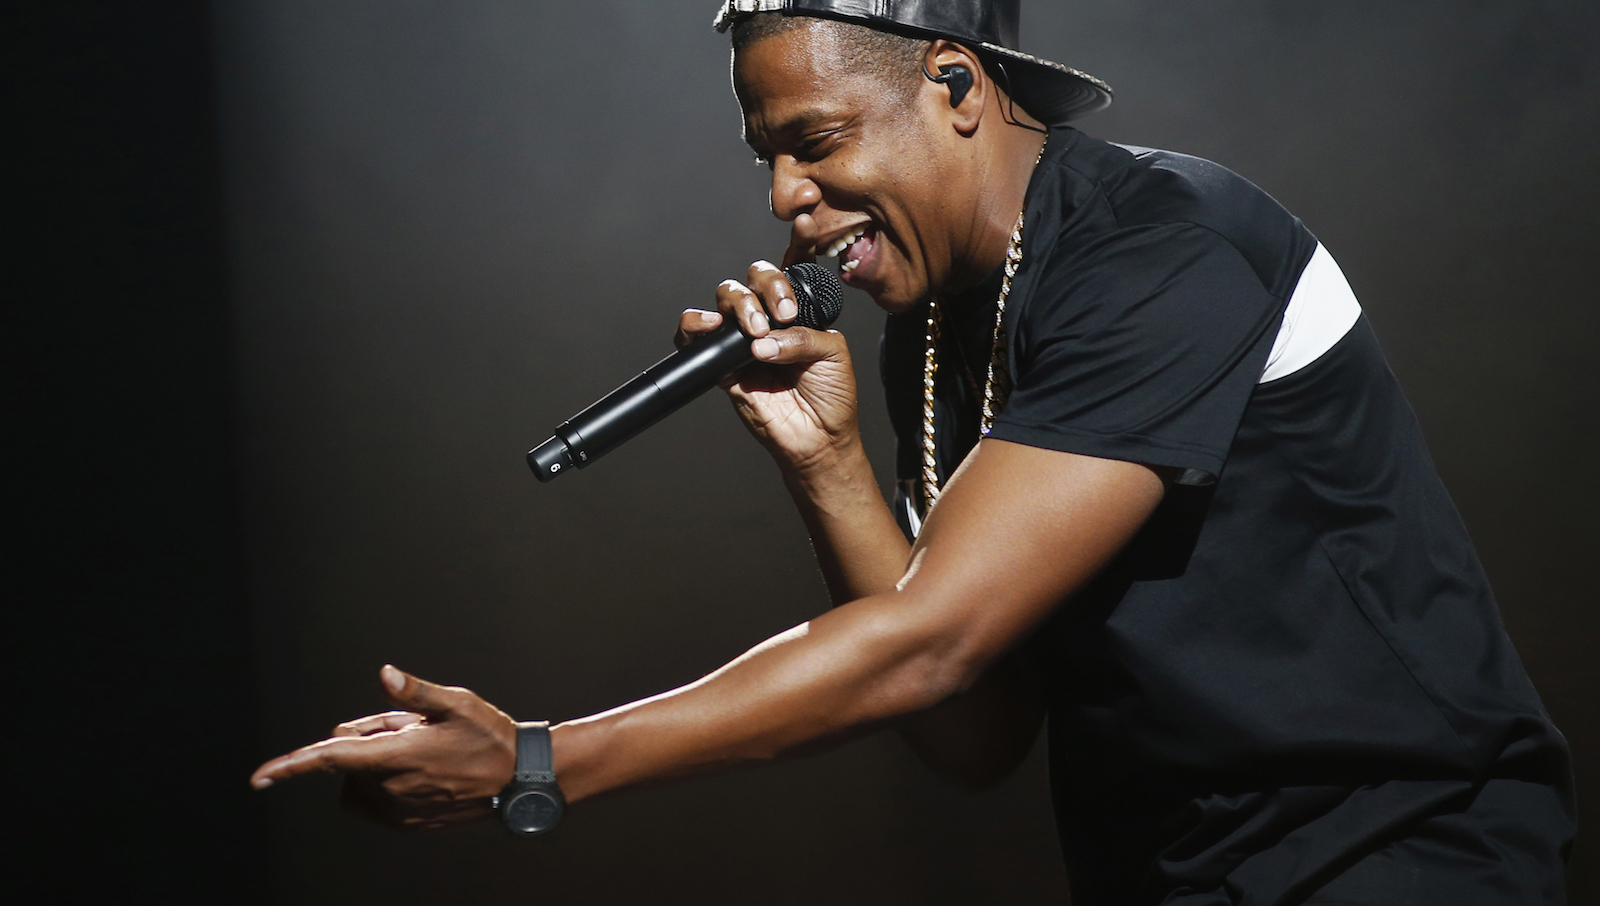 American rapper Jay-Z performs at Bercy stadium in Paris, October 17, 2013. REUTERS/Benoit Tessier/File Photo - RTSPPZD